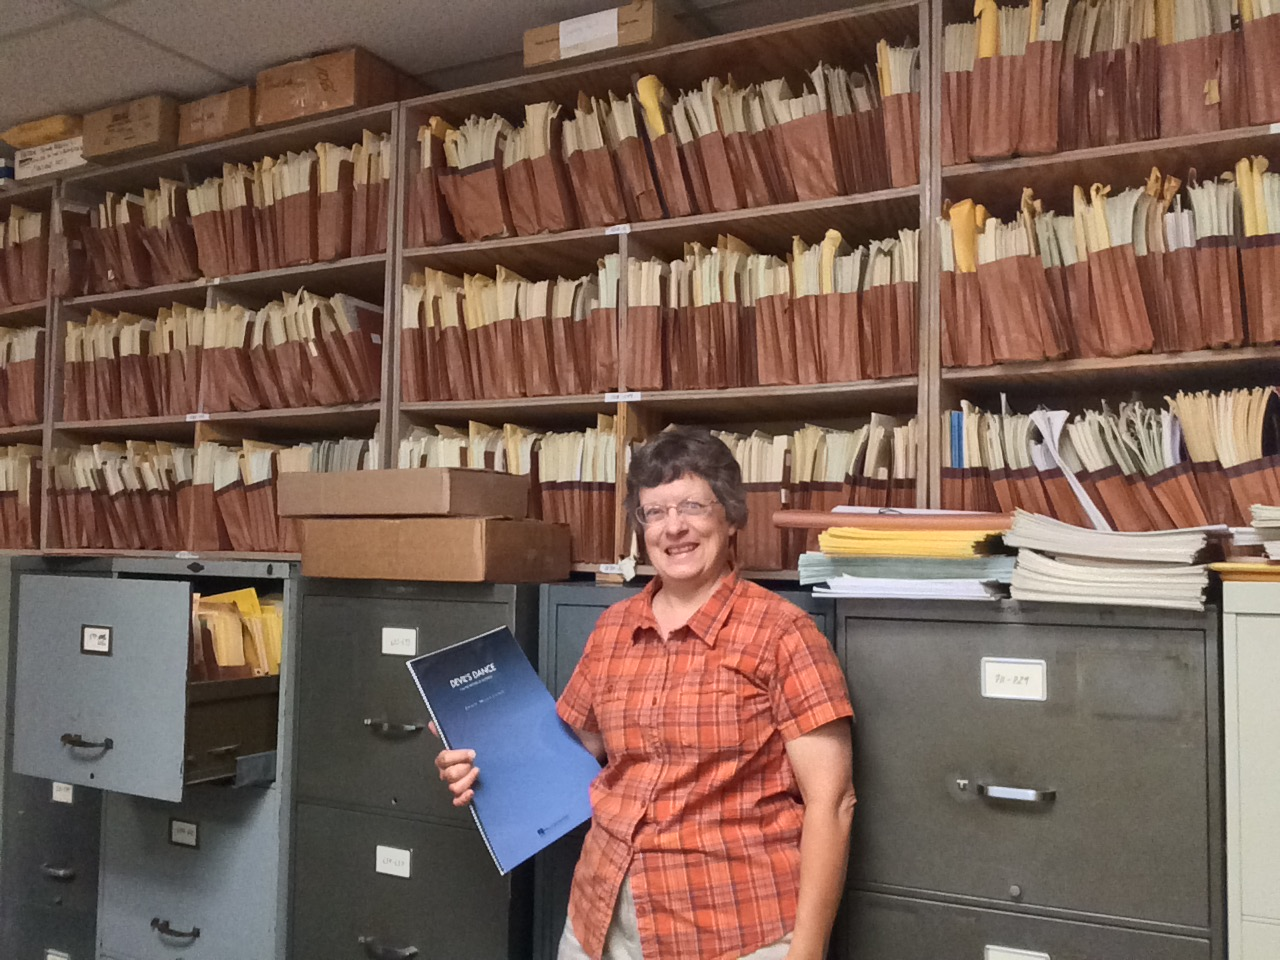 This librarian works in the music archives